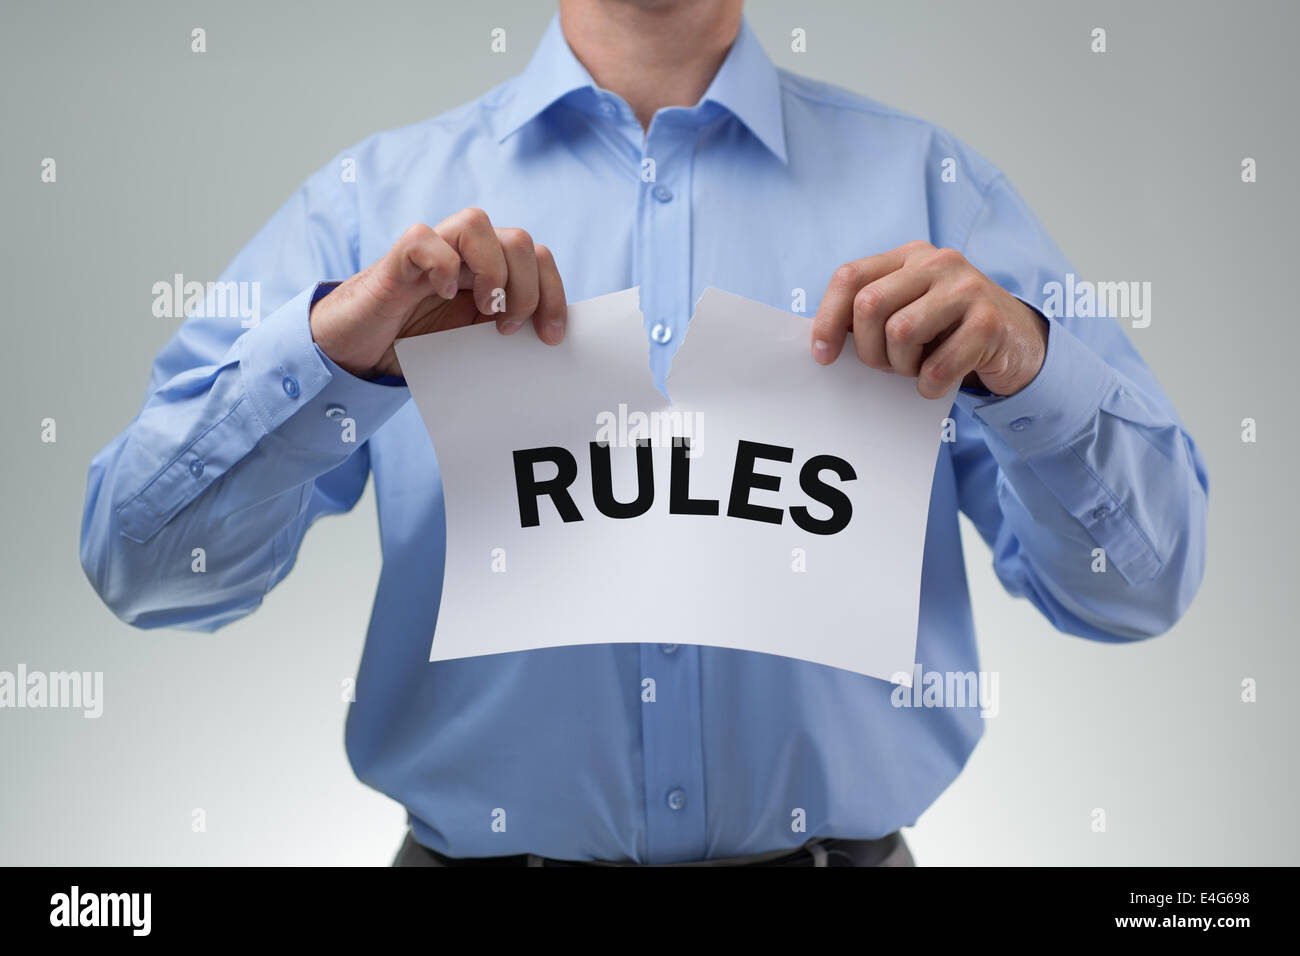 Tearing up the rules - Stock Image